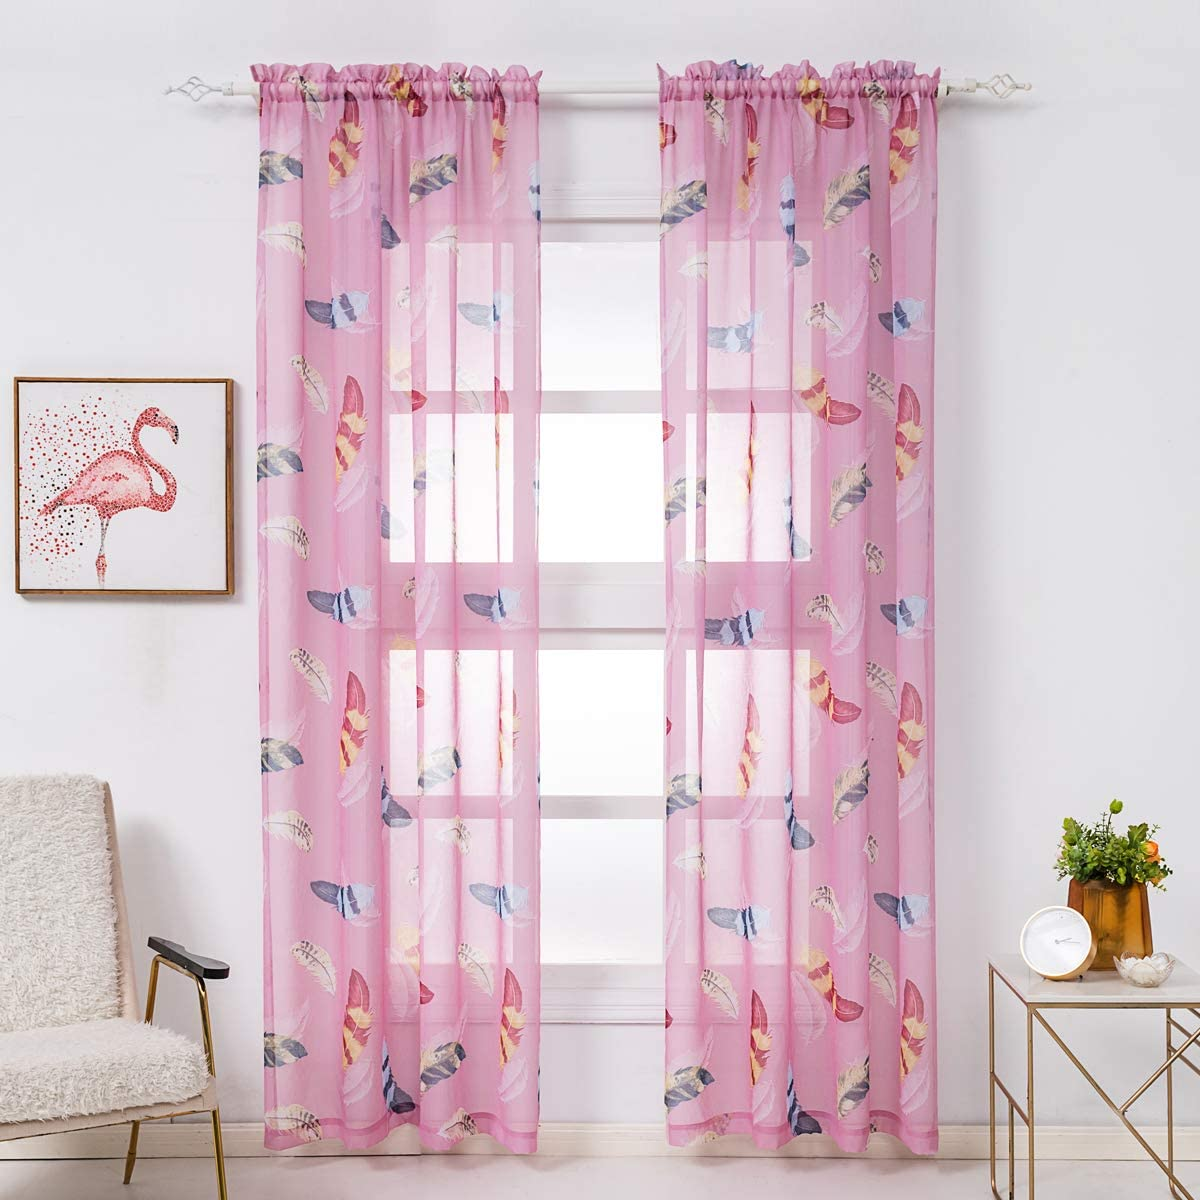 Colorful Curtains Long Panel Sheer and Blackout Curtains White with Red and Pink Floral Print Long Window Curtains